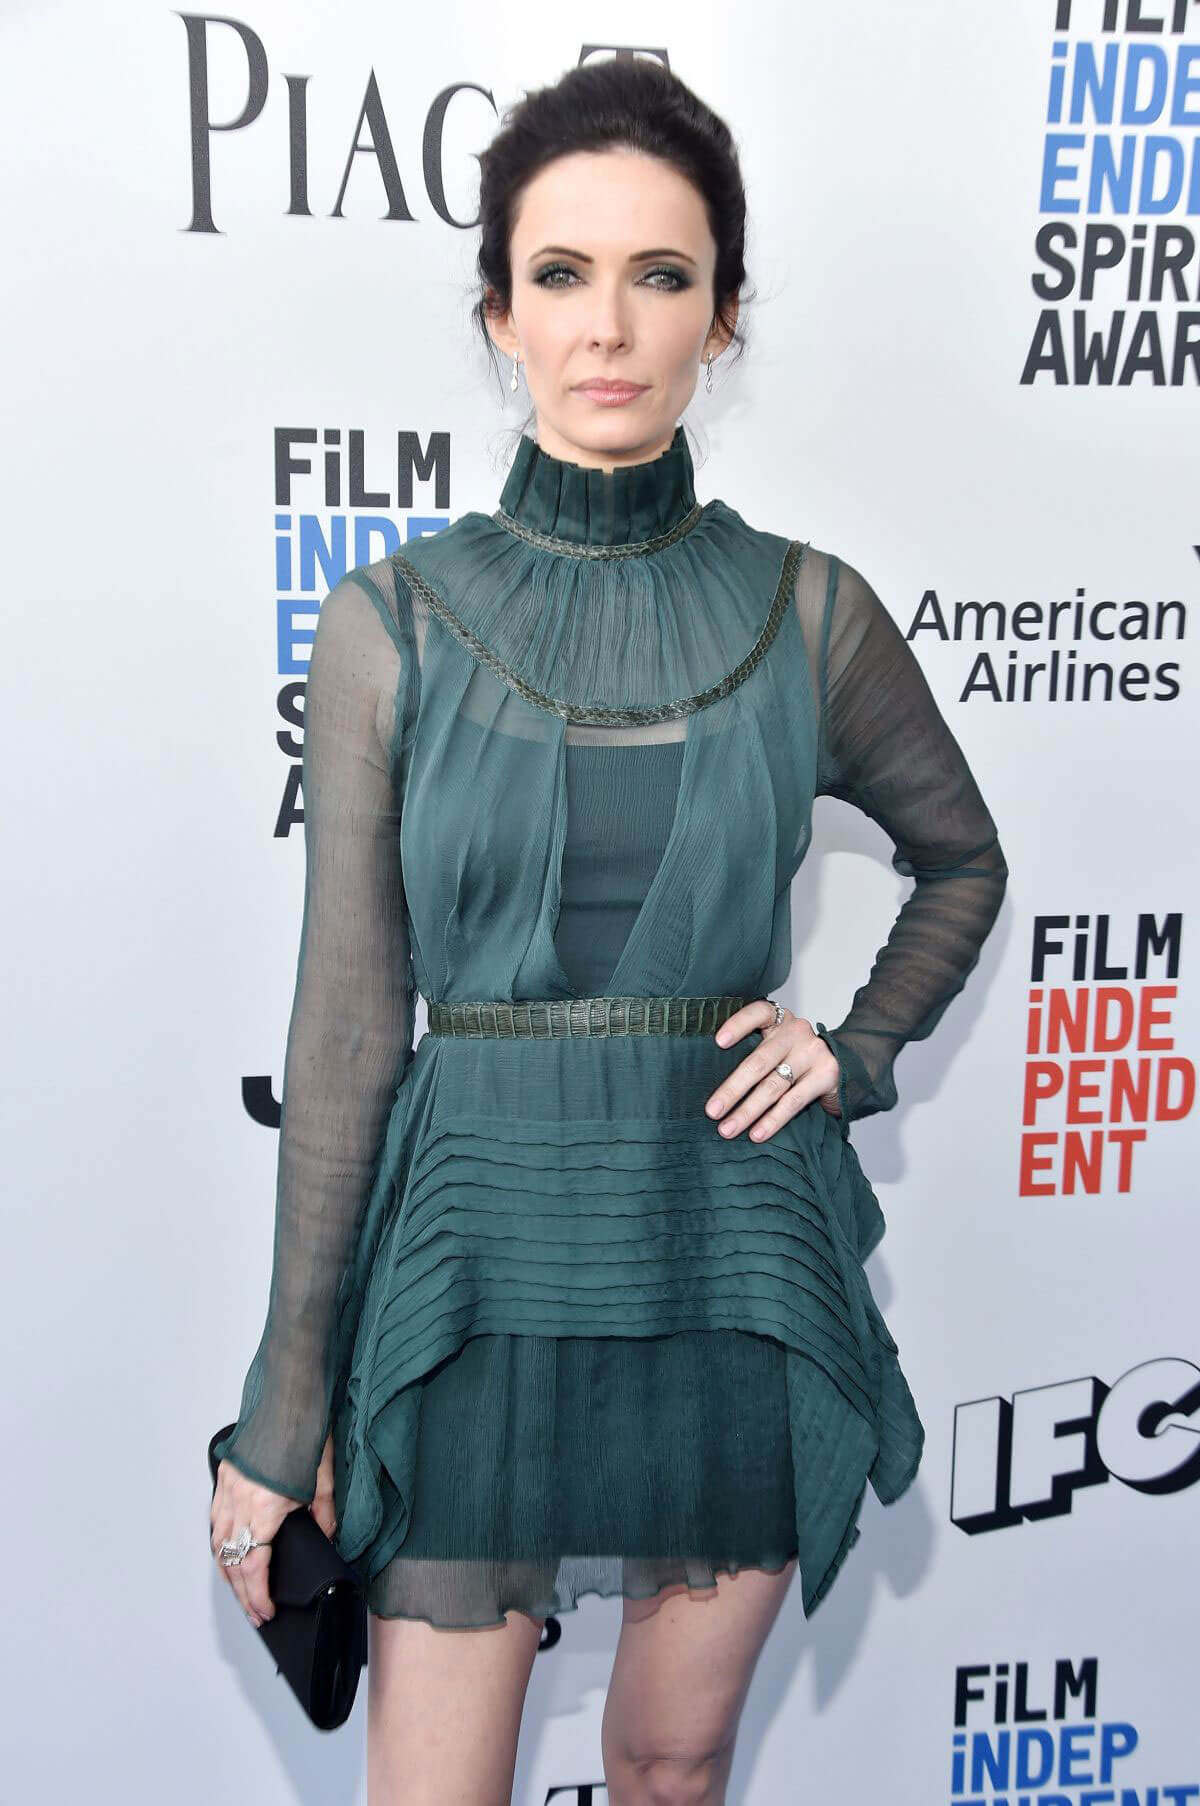 Bitsie Tulloch Stills at 2017 Film Independent Spirit Awards in Santa Monica